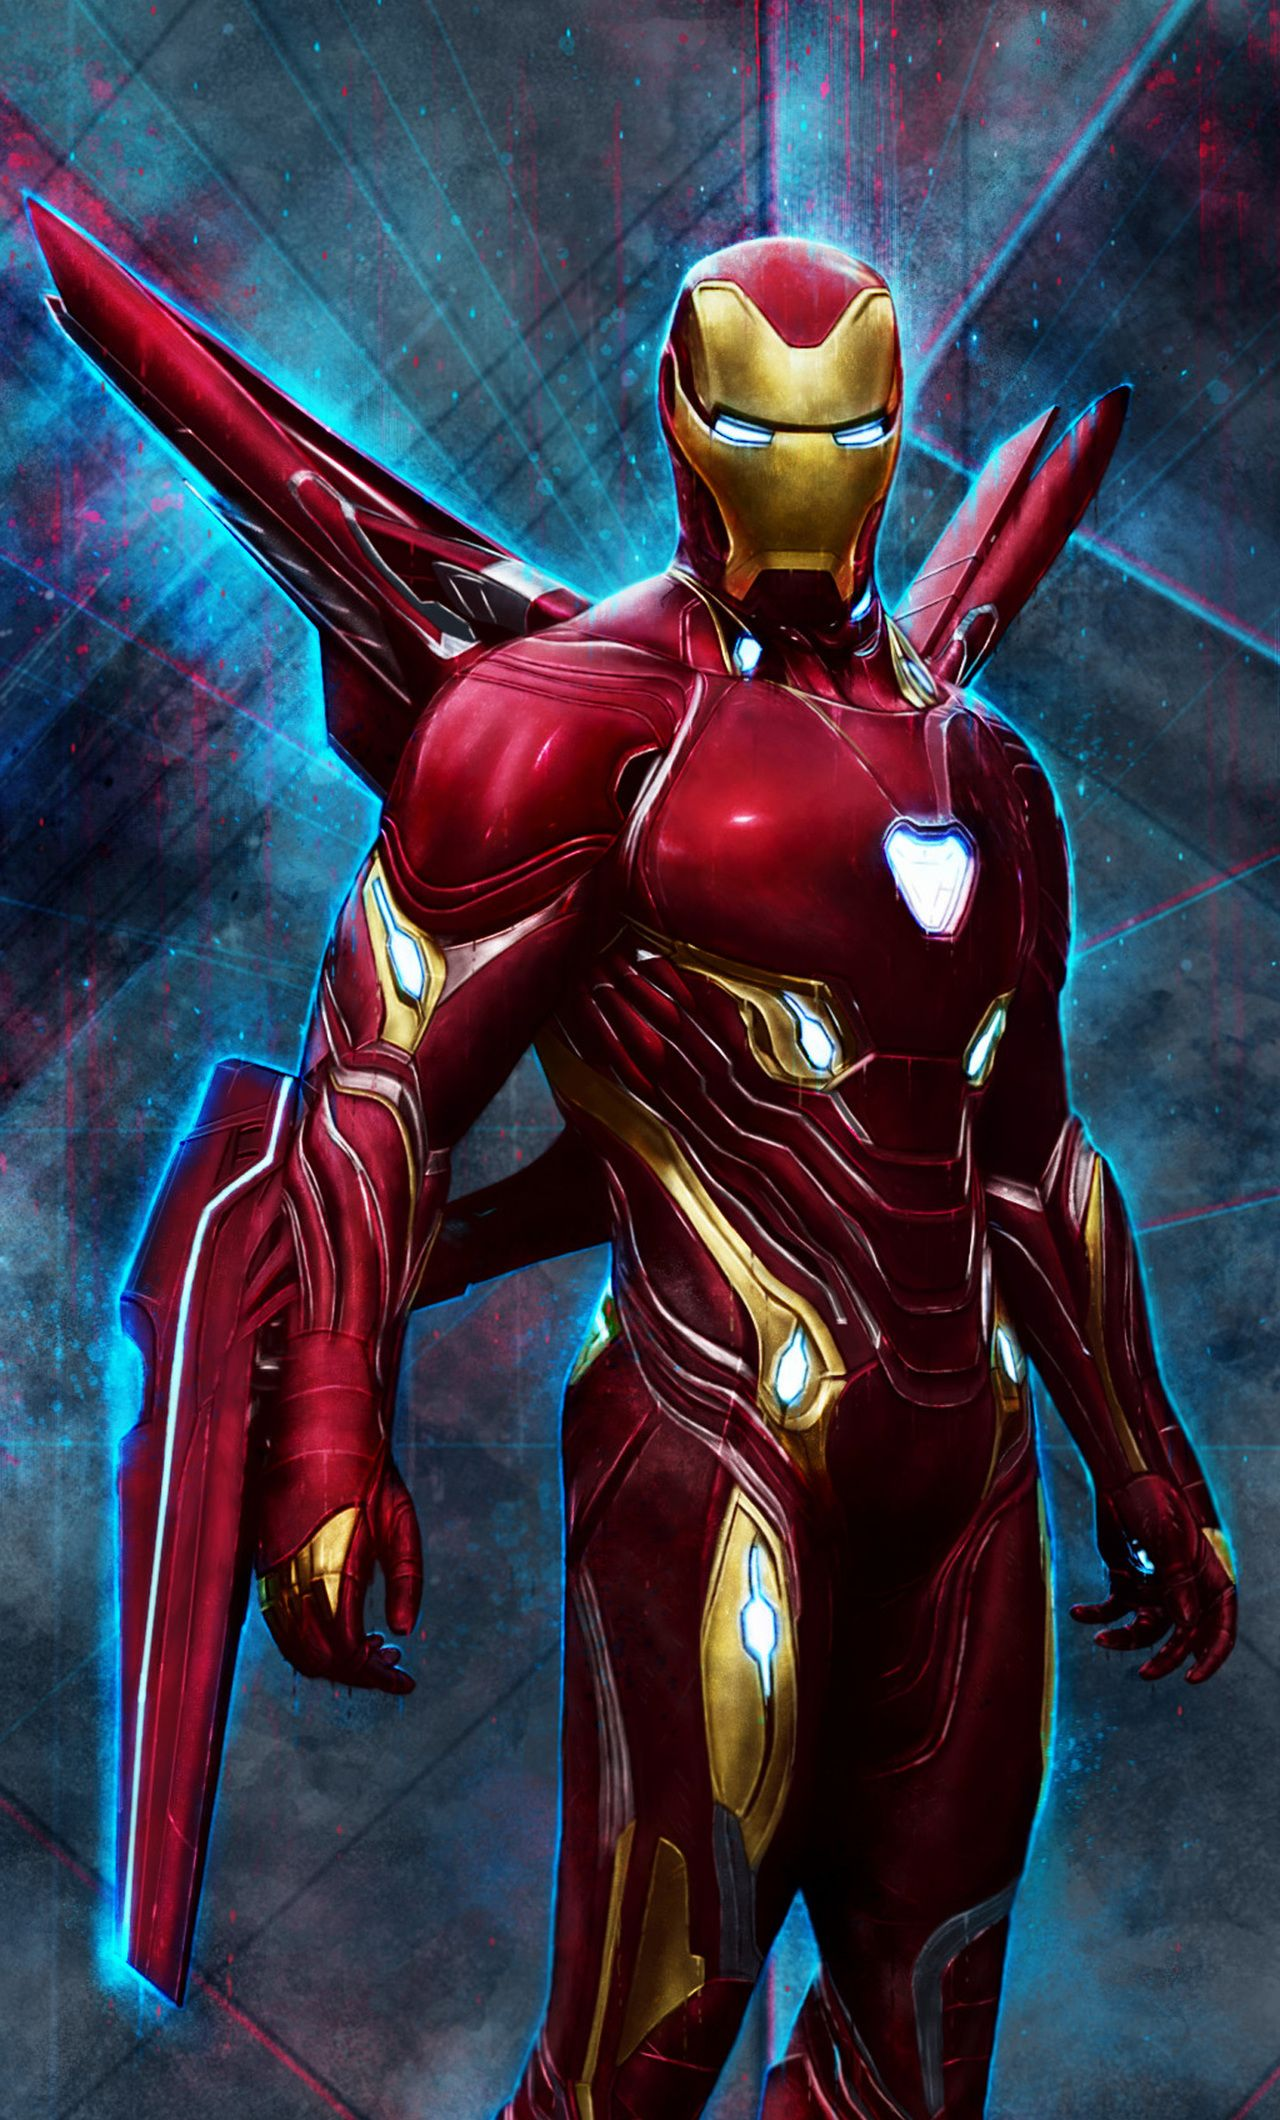 1280x2120 Iron Man Bleeding Edge Armor Iphone 6 Hd 4k Wallpapers